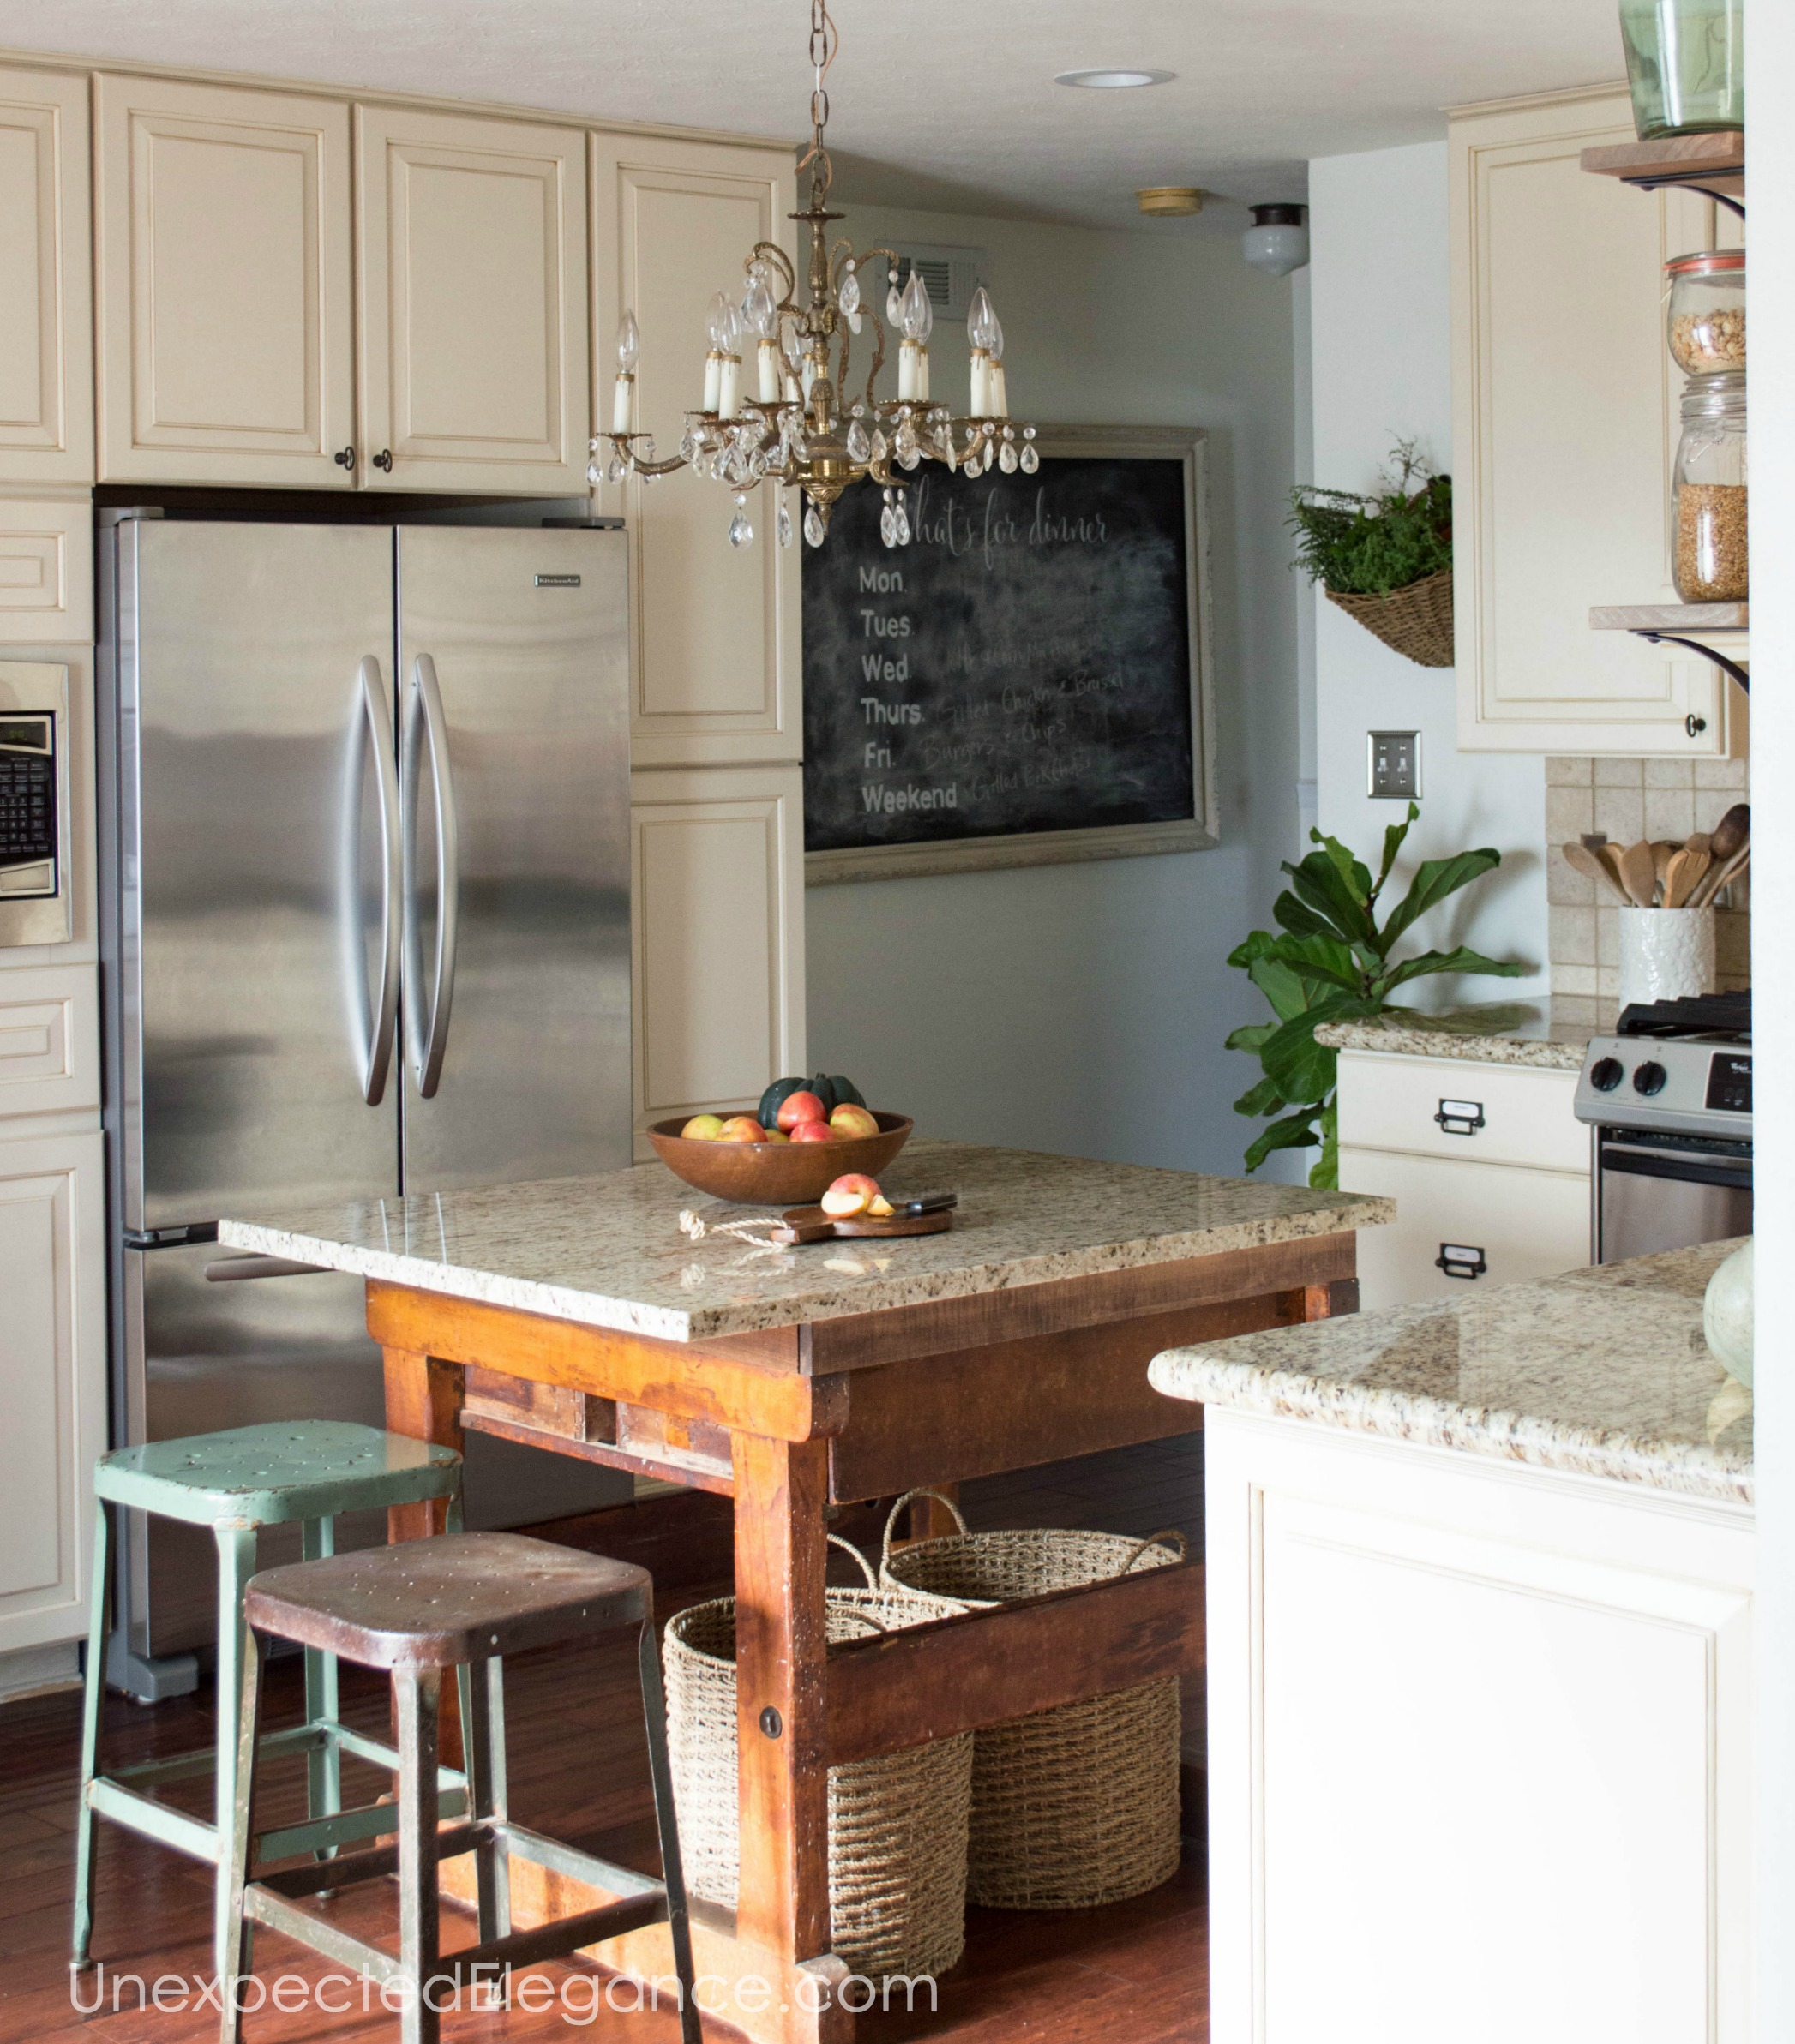 8 Ways to Update Kitchen Cabinets Unexpected Elegance